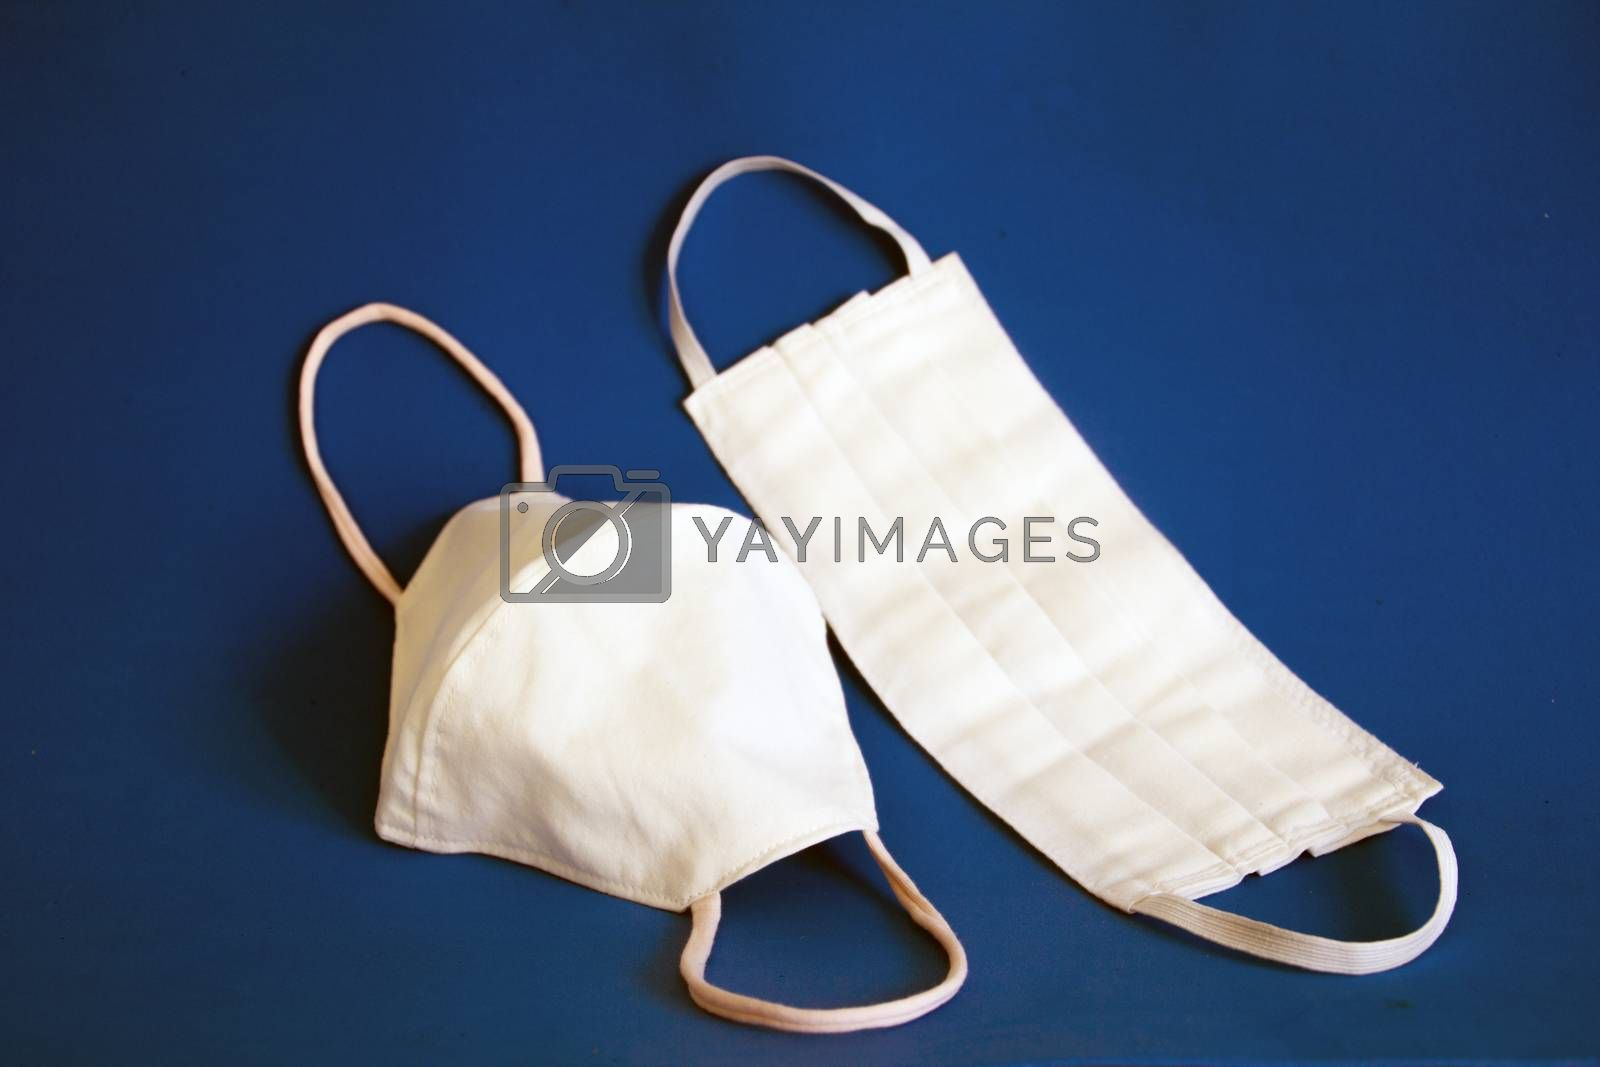 two diferent kind of homemade protection masks for covid-19 with a blue background